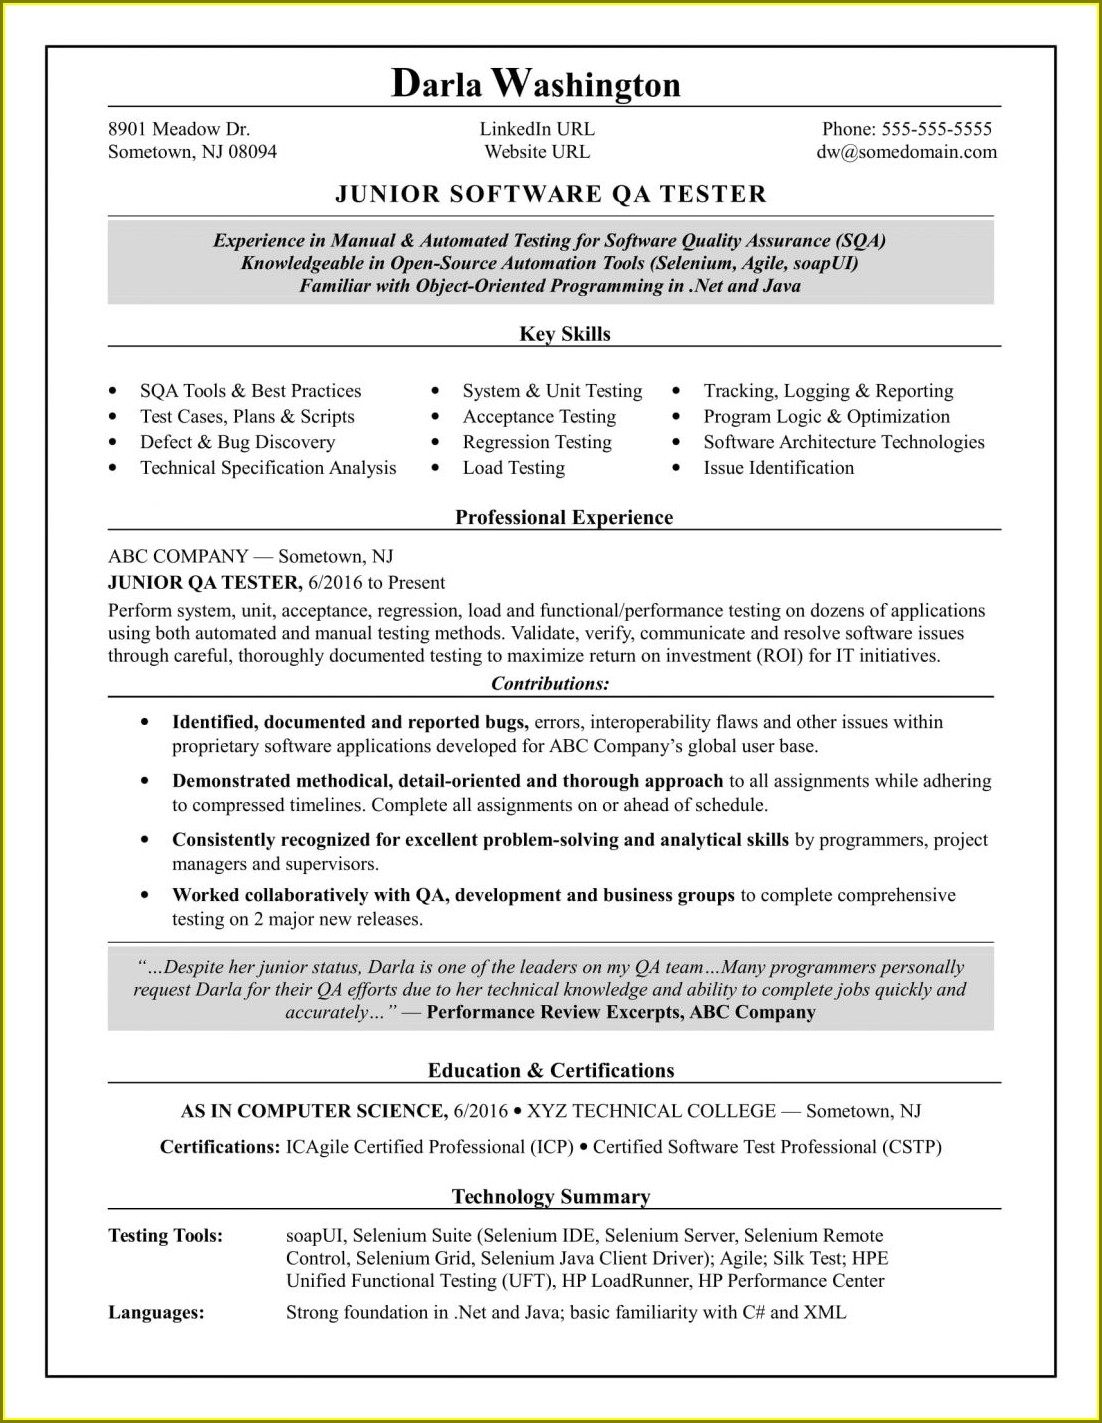 Resume Format Doc For Fresher Engineering Student